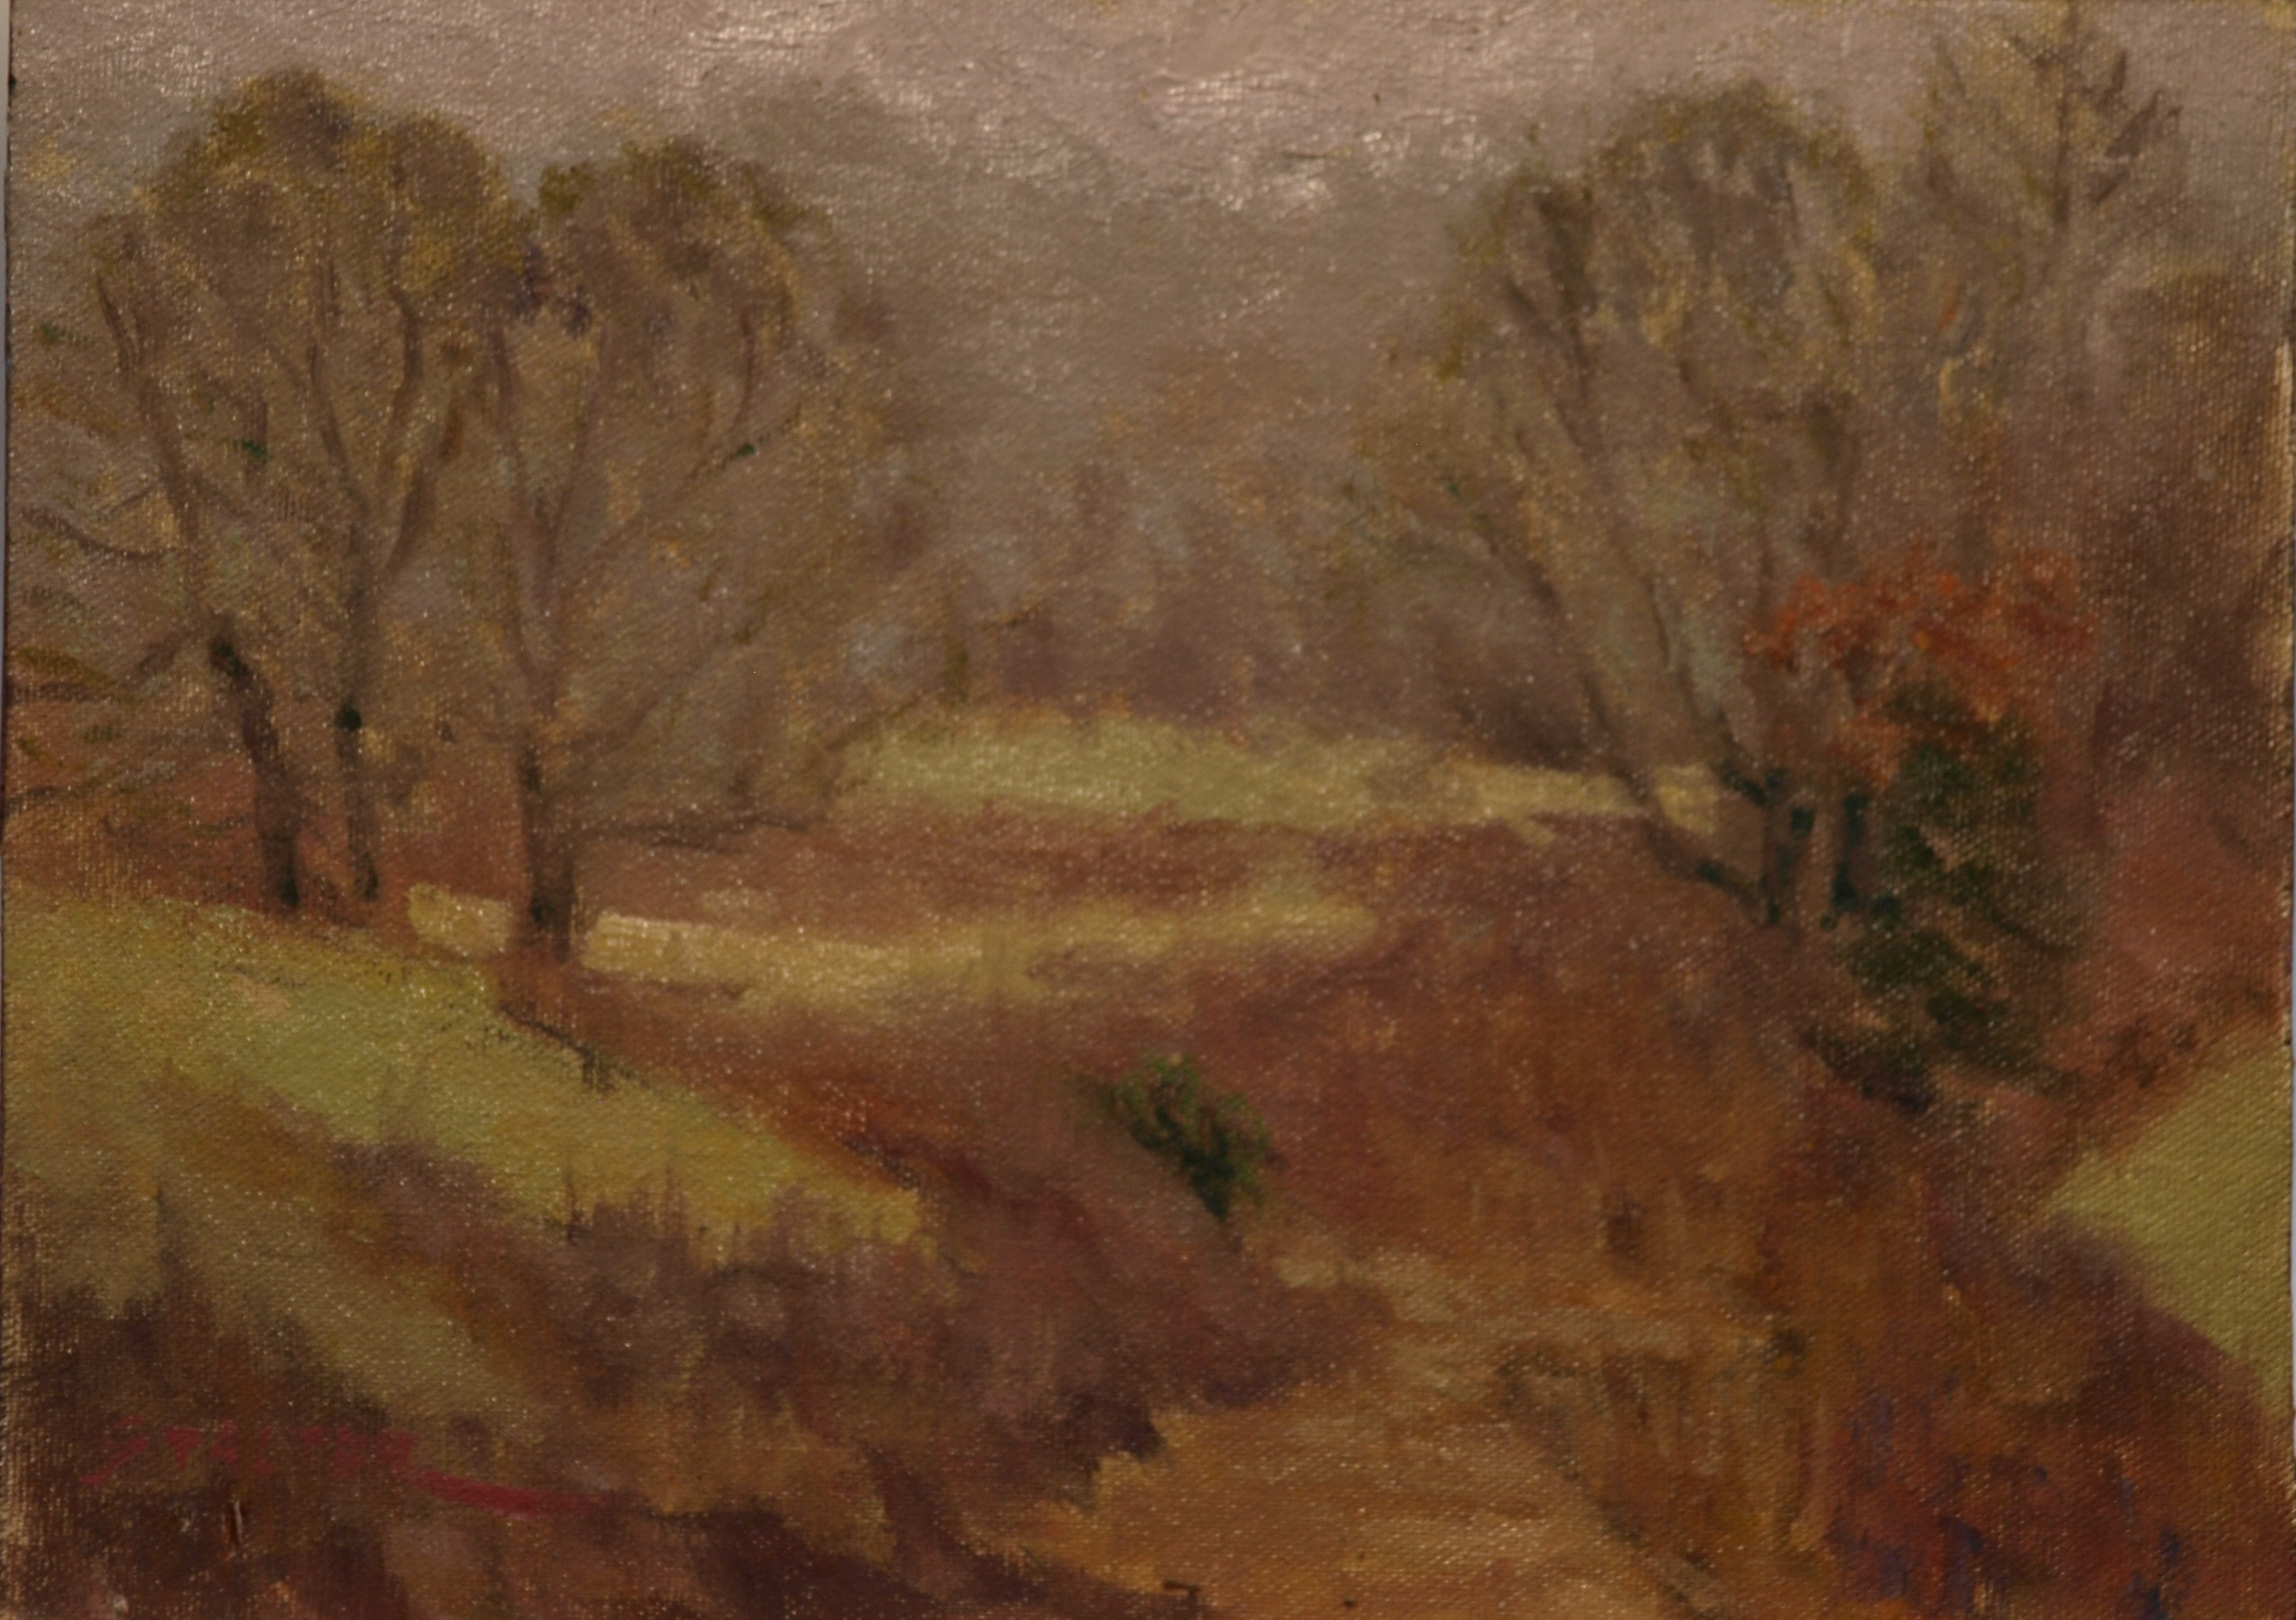 The Gully - Hazy Day, Oil on Canvas on Panel, 9 x 12 Inches, by Richard Stalter, $225